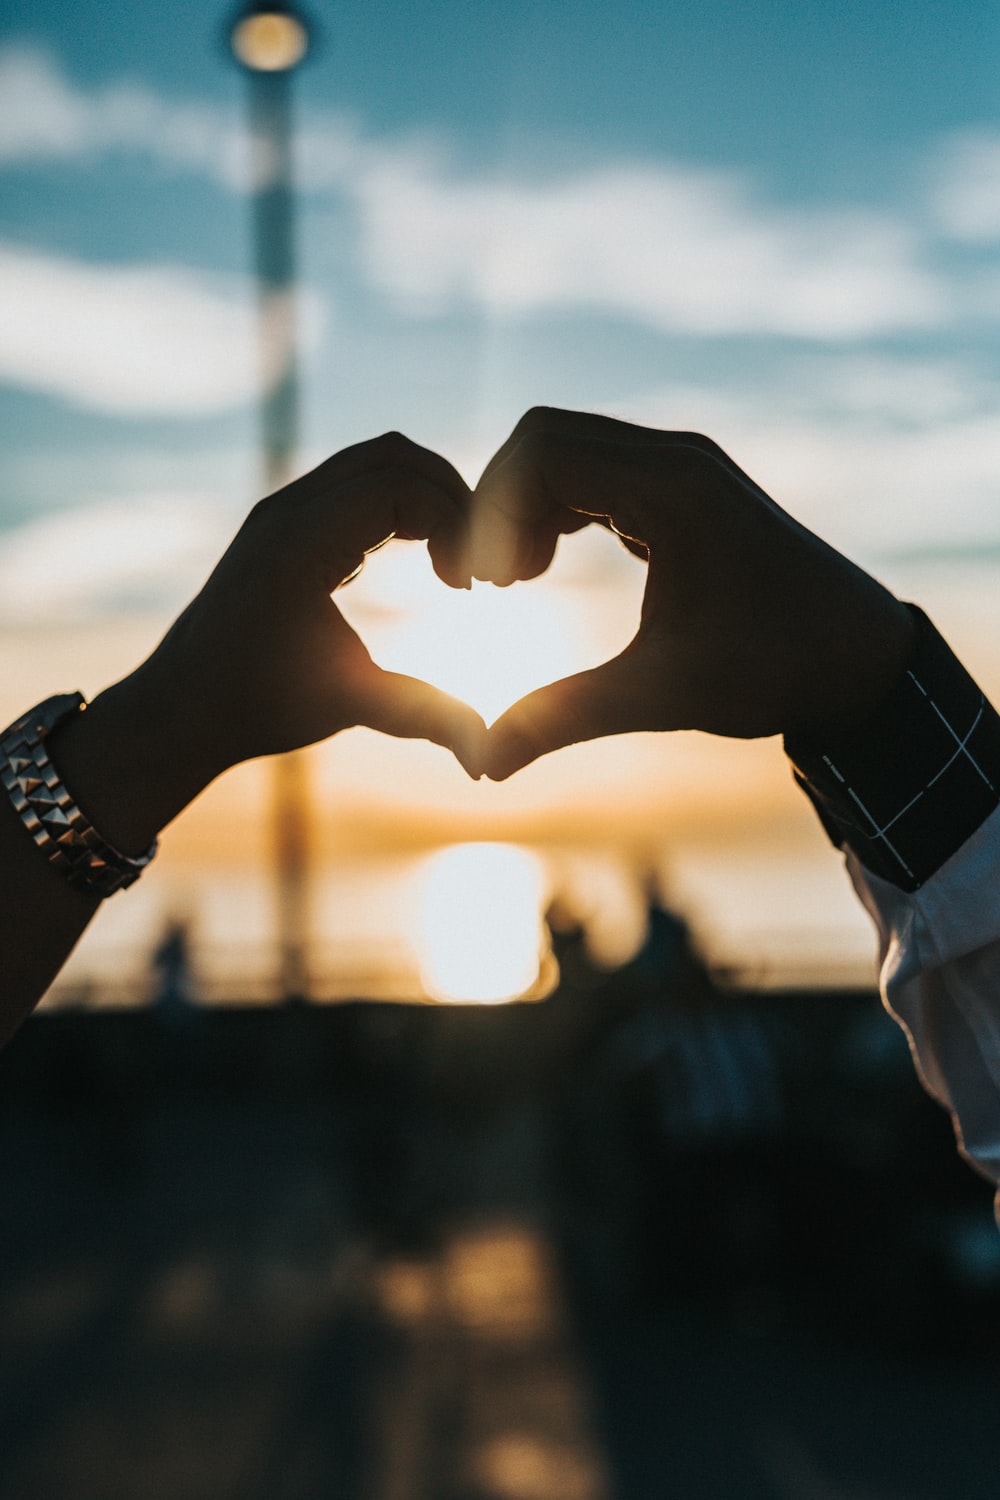 Heart, Hands, Sunset And Sunrise Hd Photo By Tyler Nix -5731